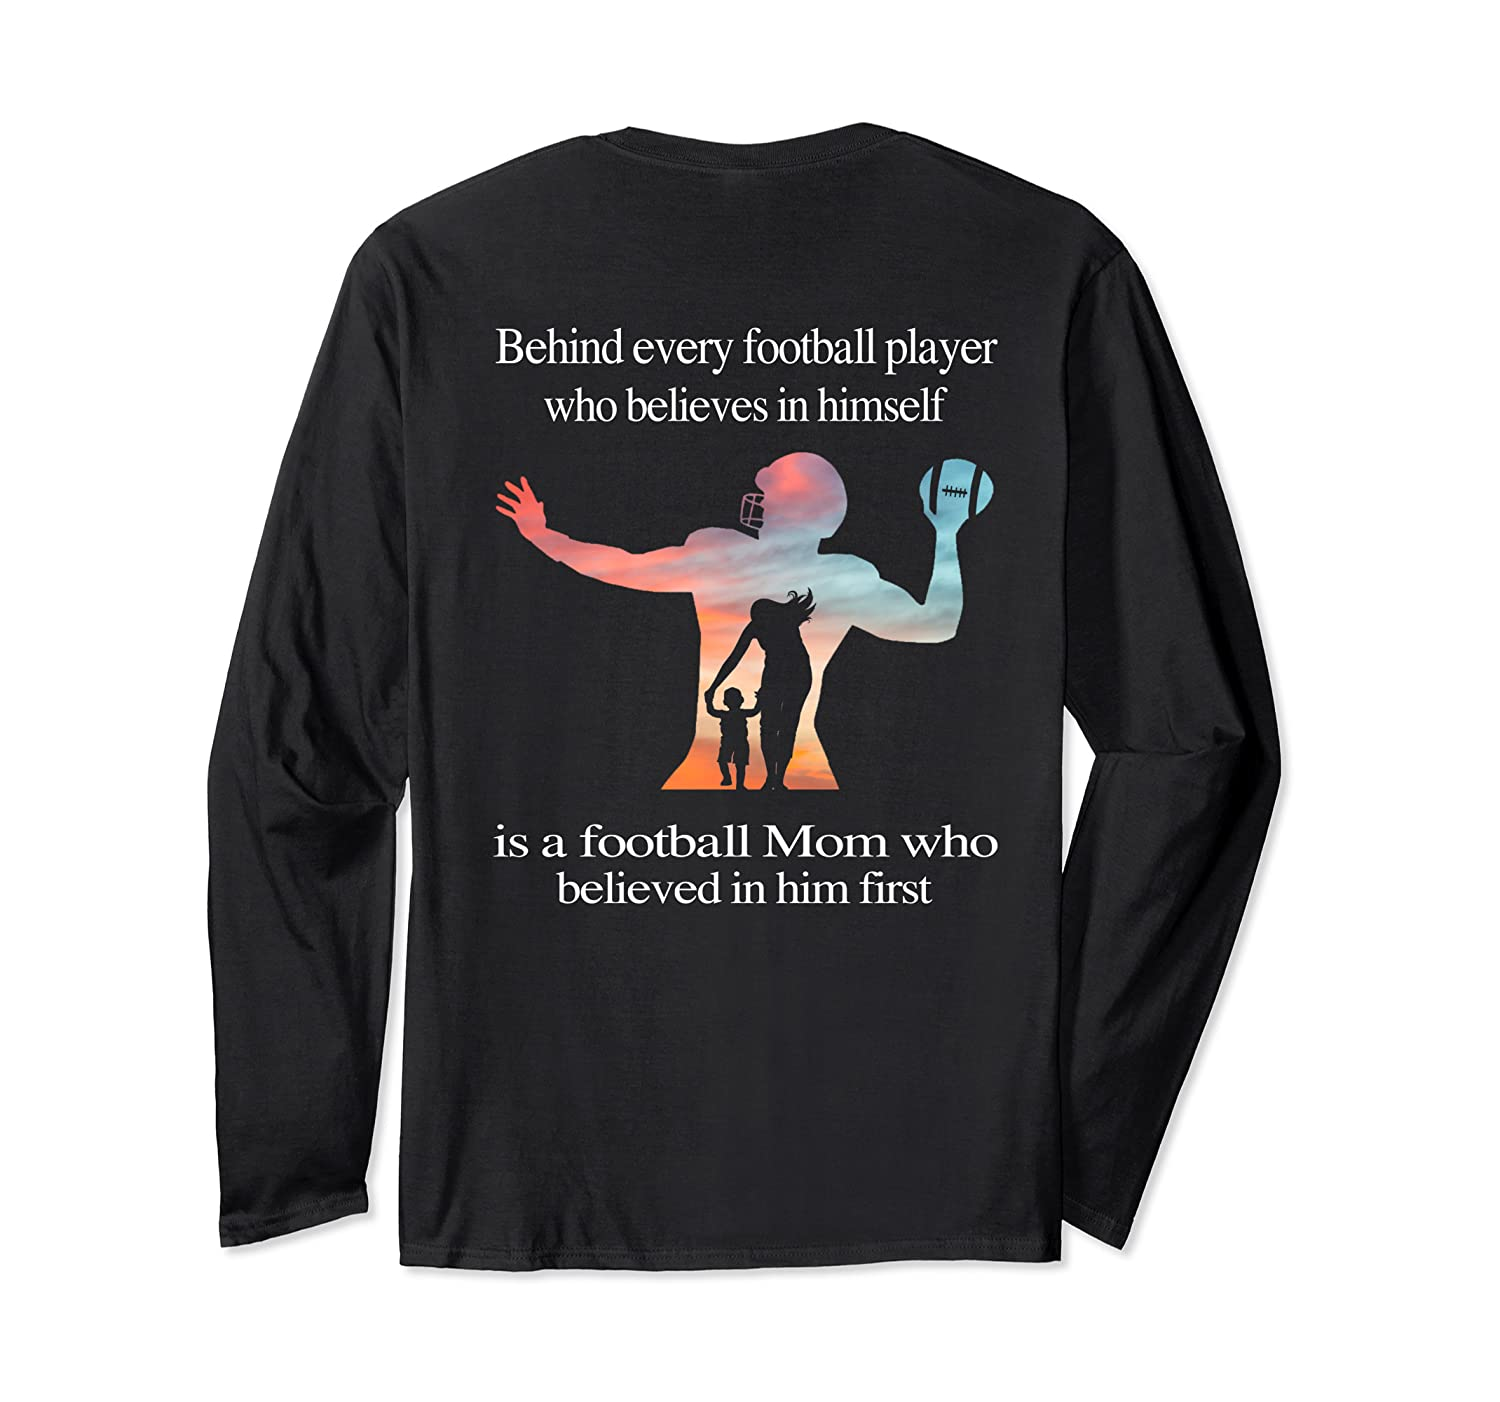 Behind Every Football Player - Family Mom Mother Gift T-shirt